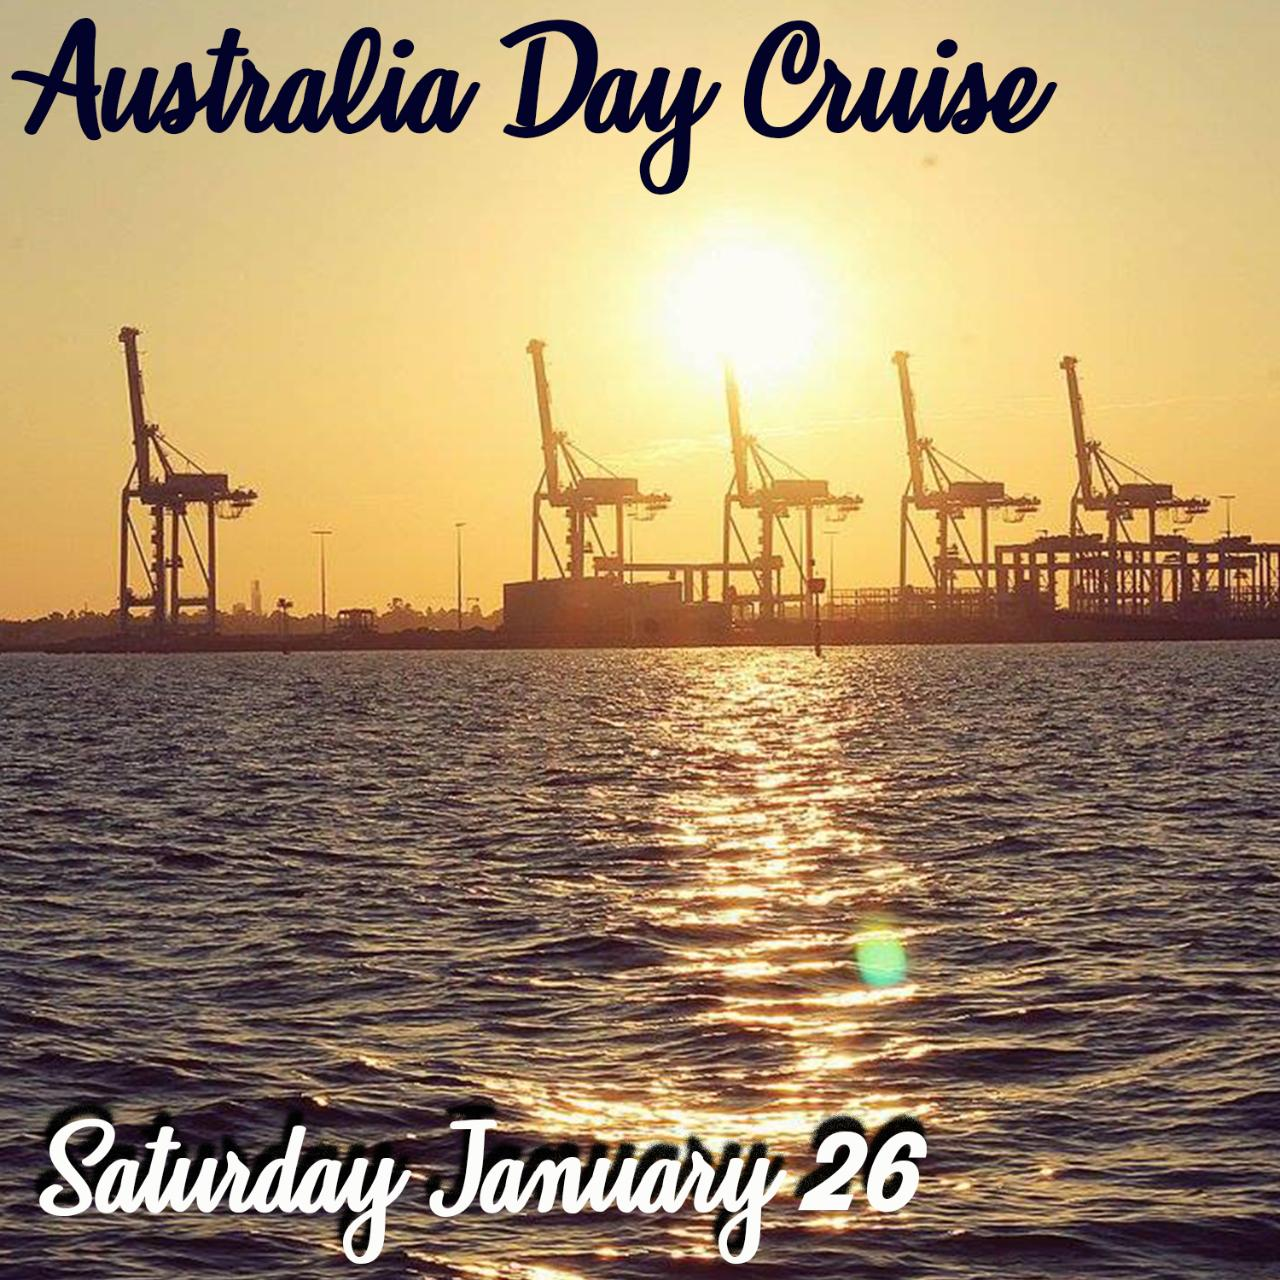 Australia Day Scenic Sightseeing Cruise